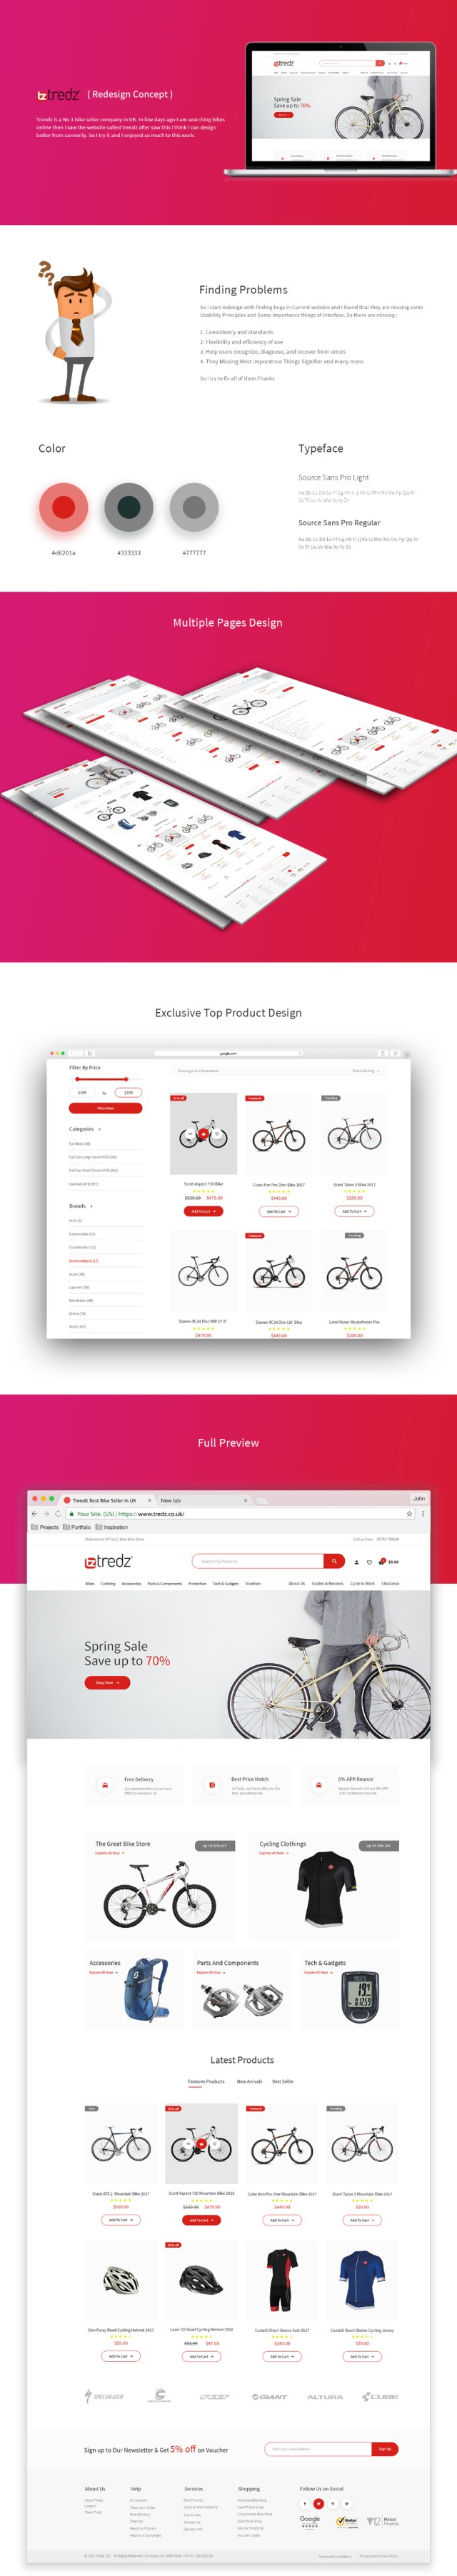 Tredz E-Commerce PSD Template